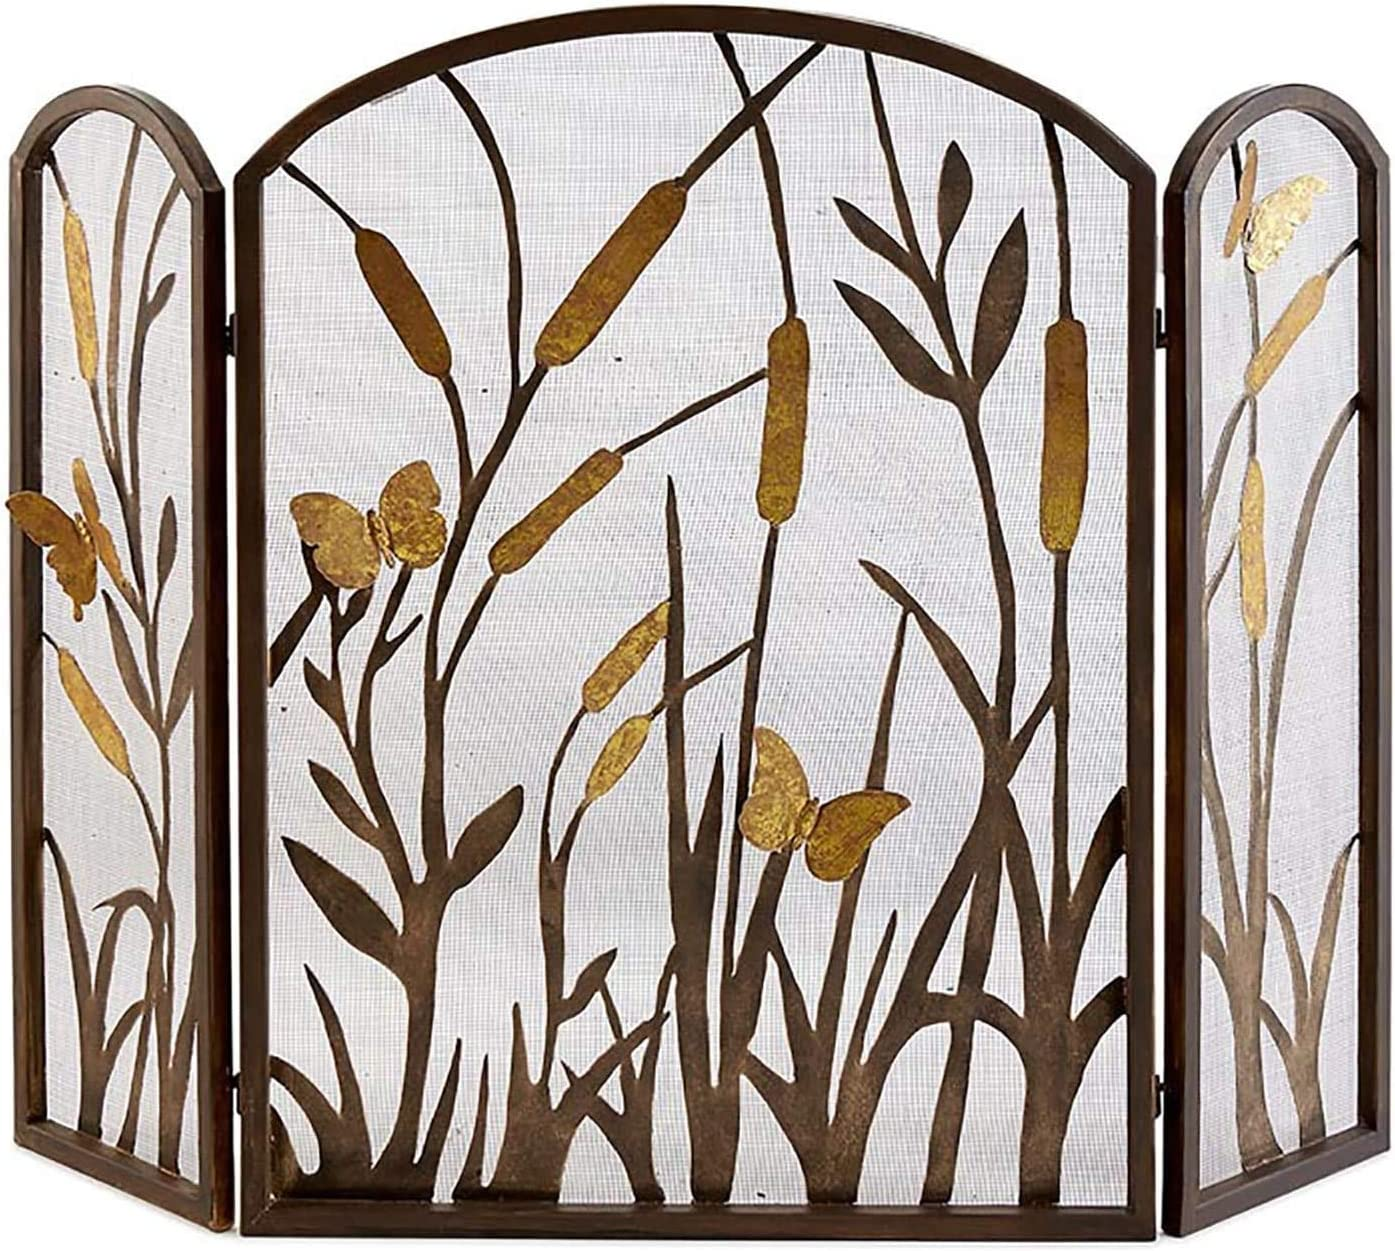 ZSEFV Screens High material Fireplace Covers Leaf Decorative Design 4 years warranty